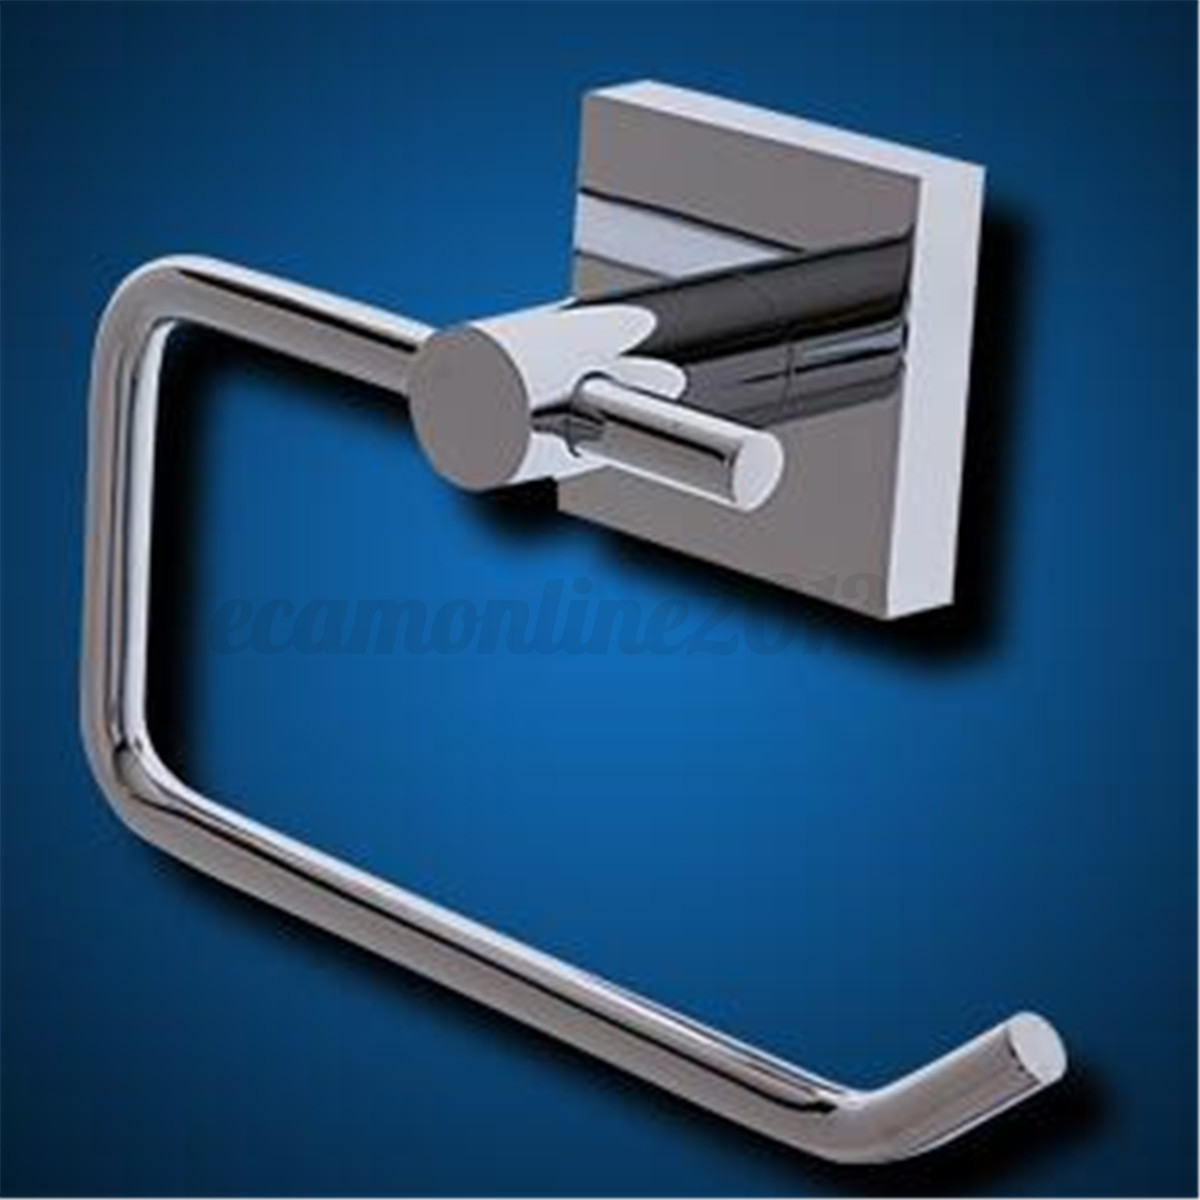 Stainless steel chrome bathroom toilet paper roll tissue holder bar wall mounted cad - Tissue holder bathroom ...